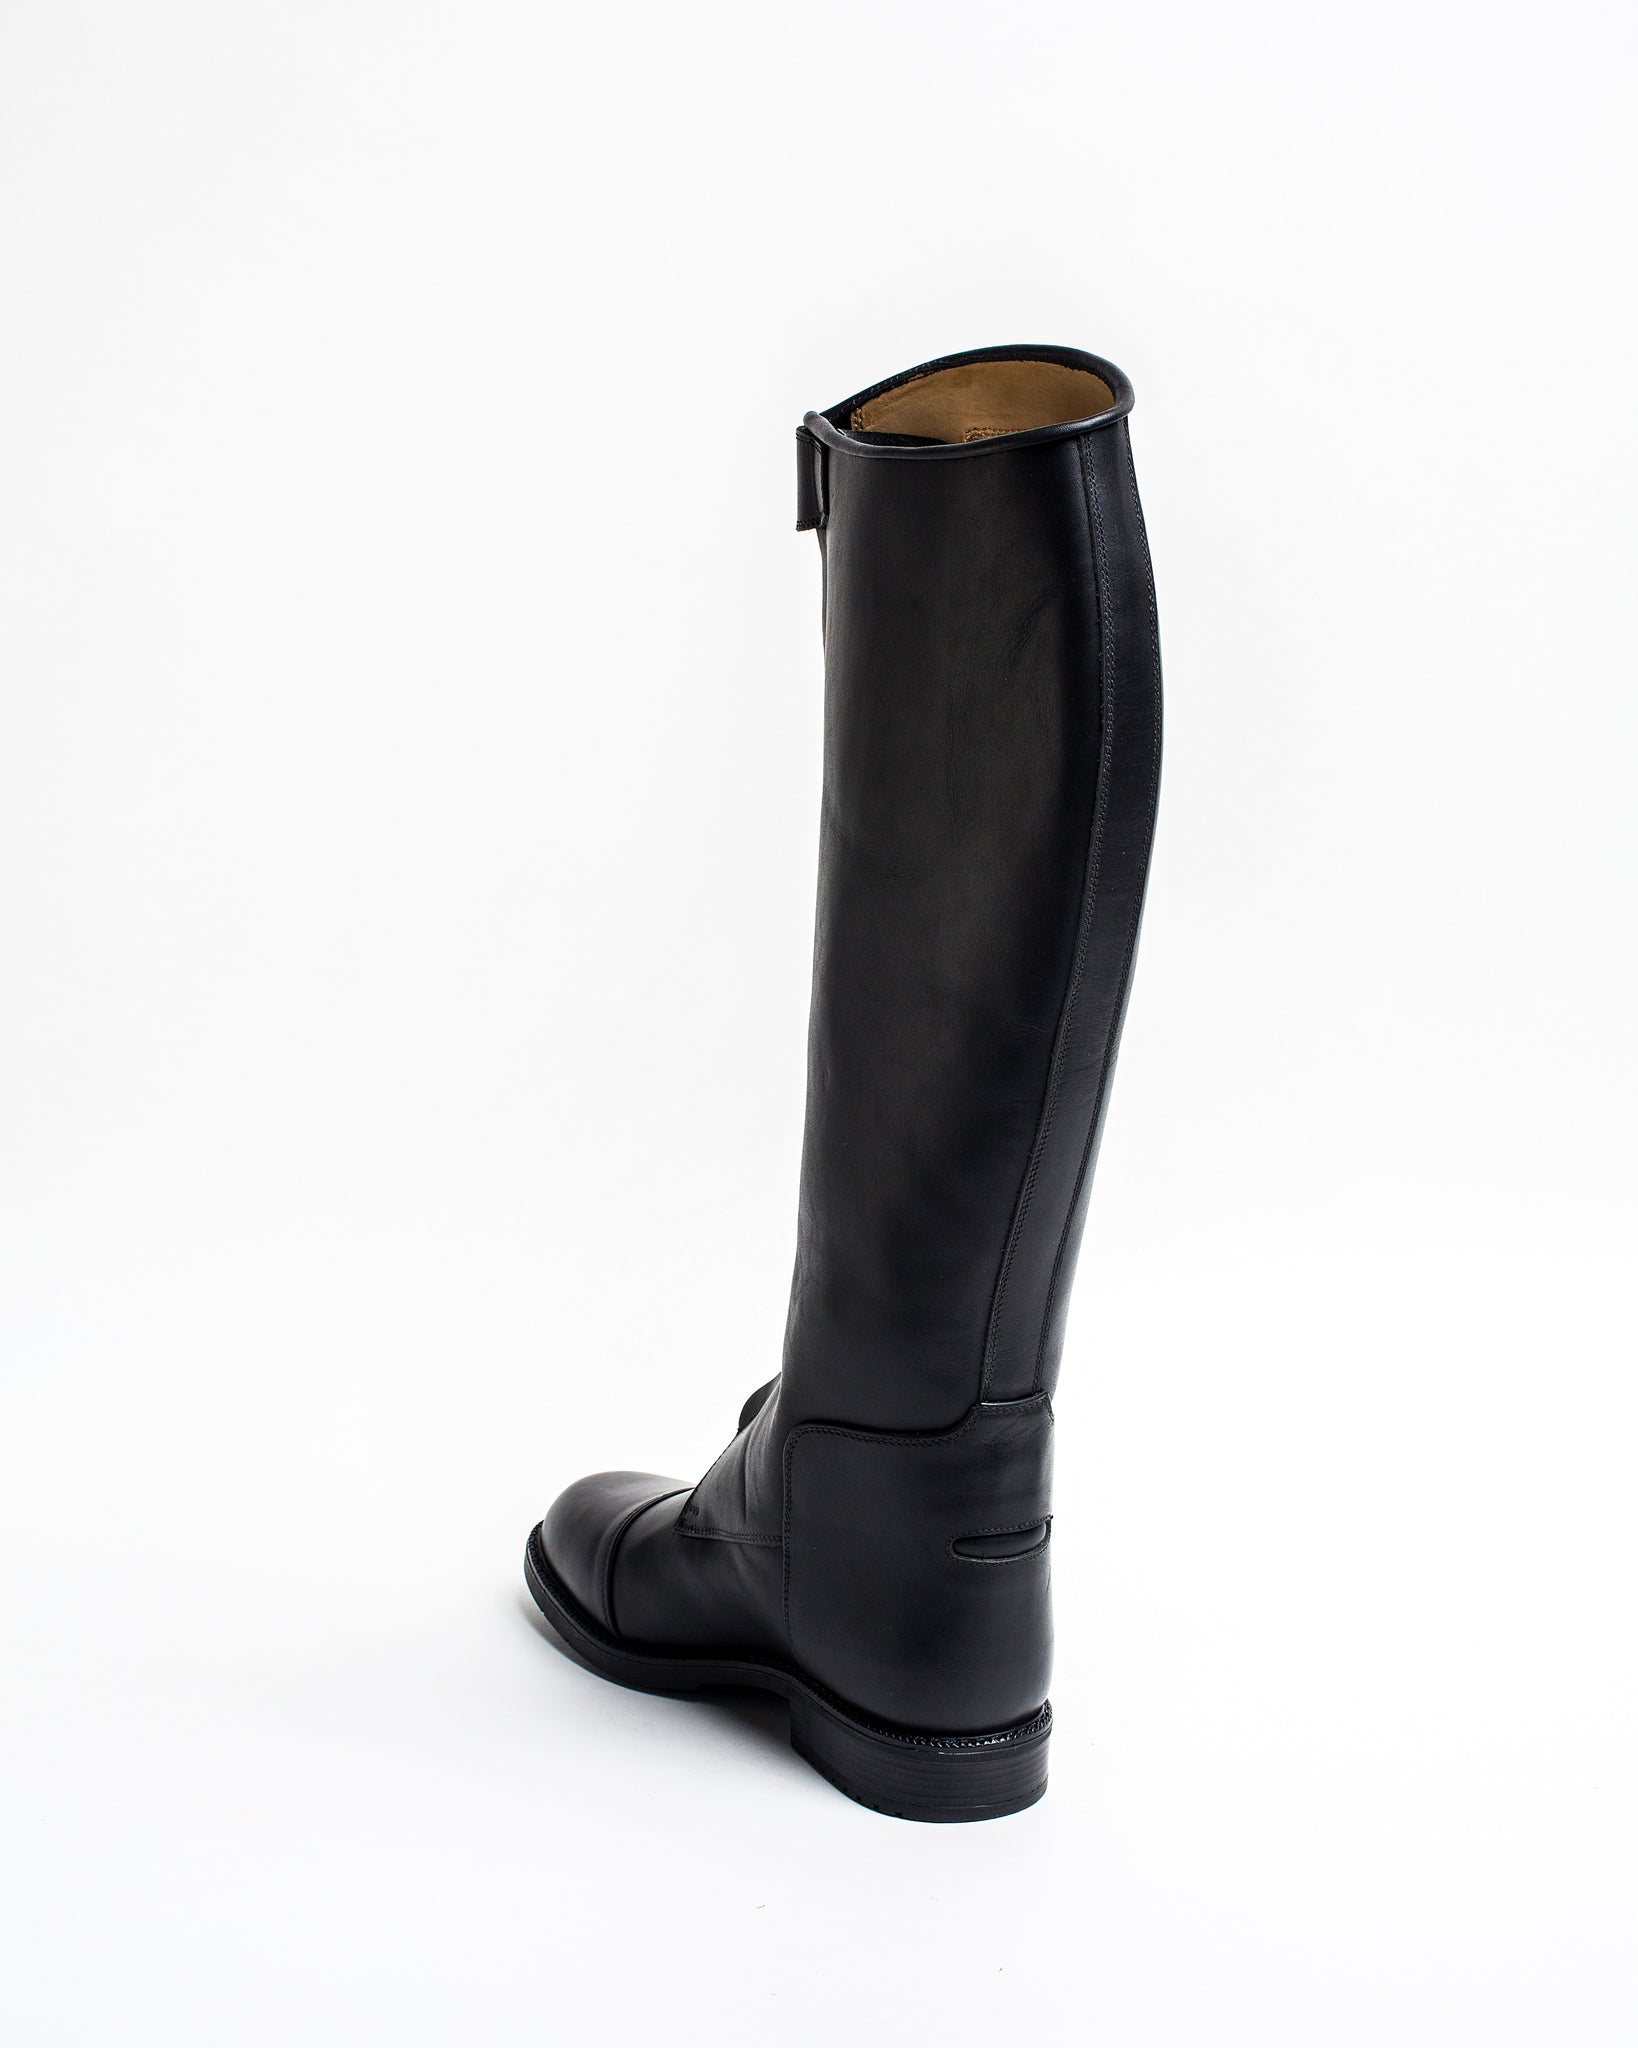 Canter - riding boots